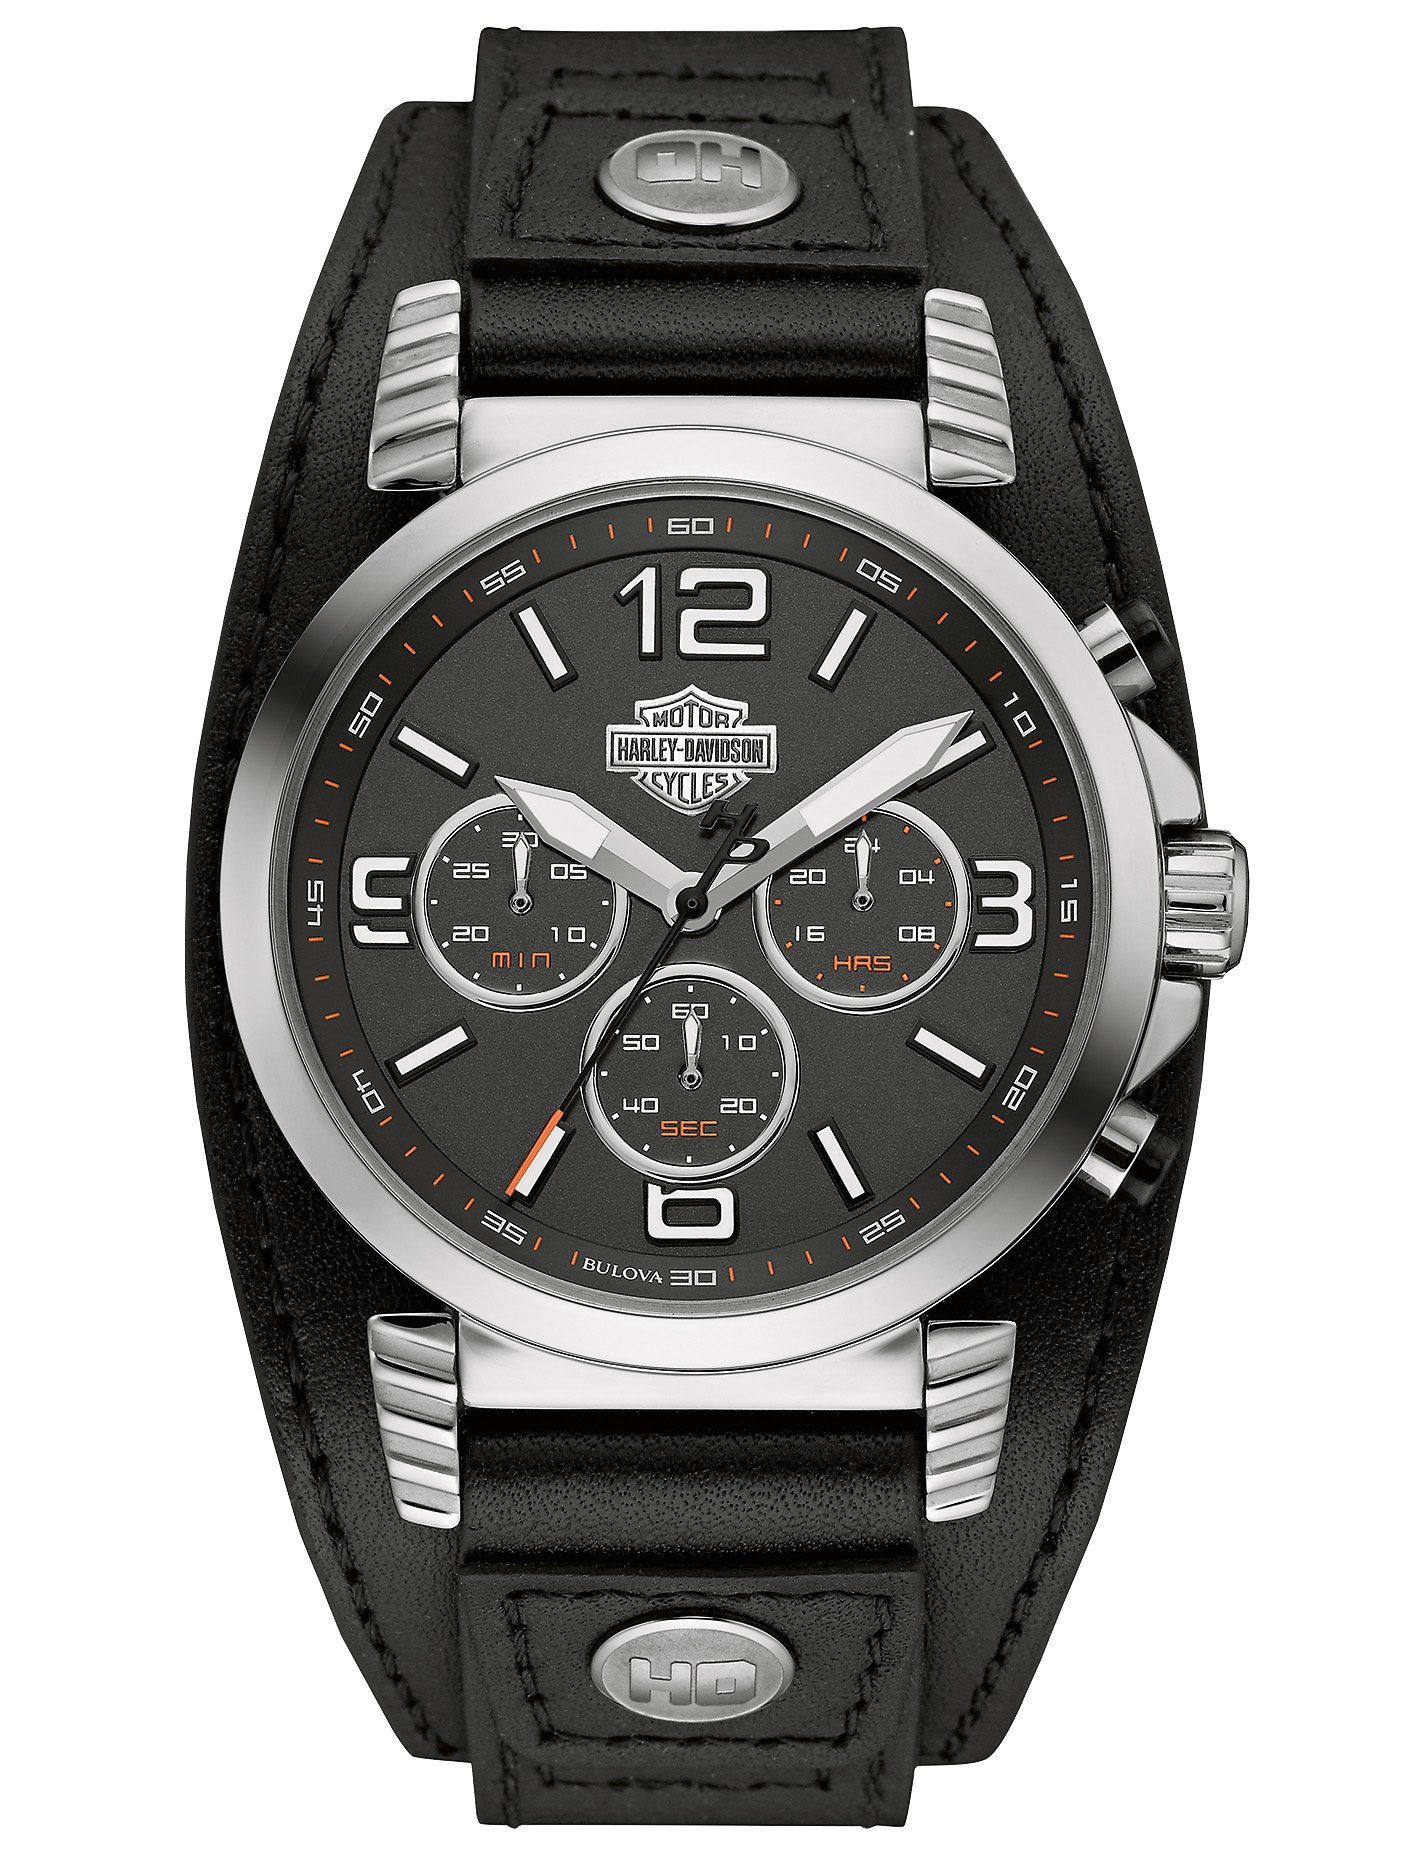 Harley Davidson Chronograph »Road King, 76B173«